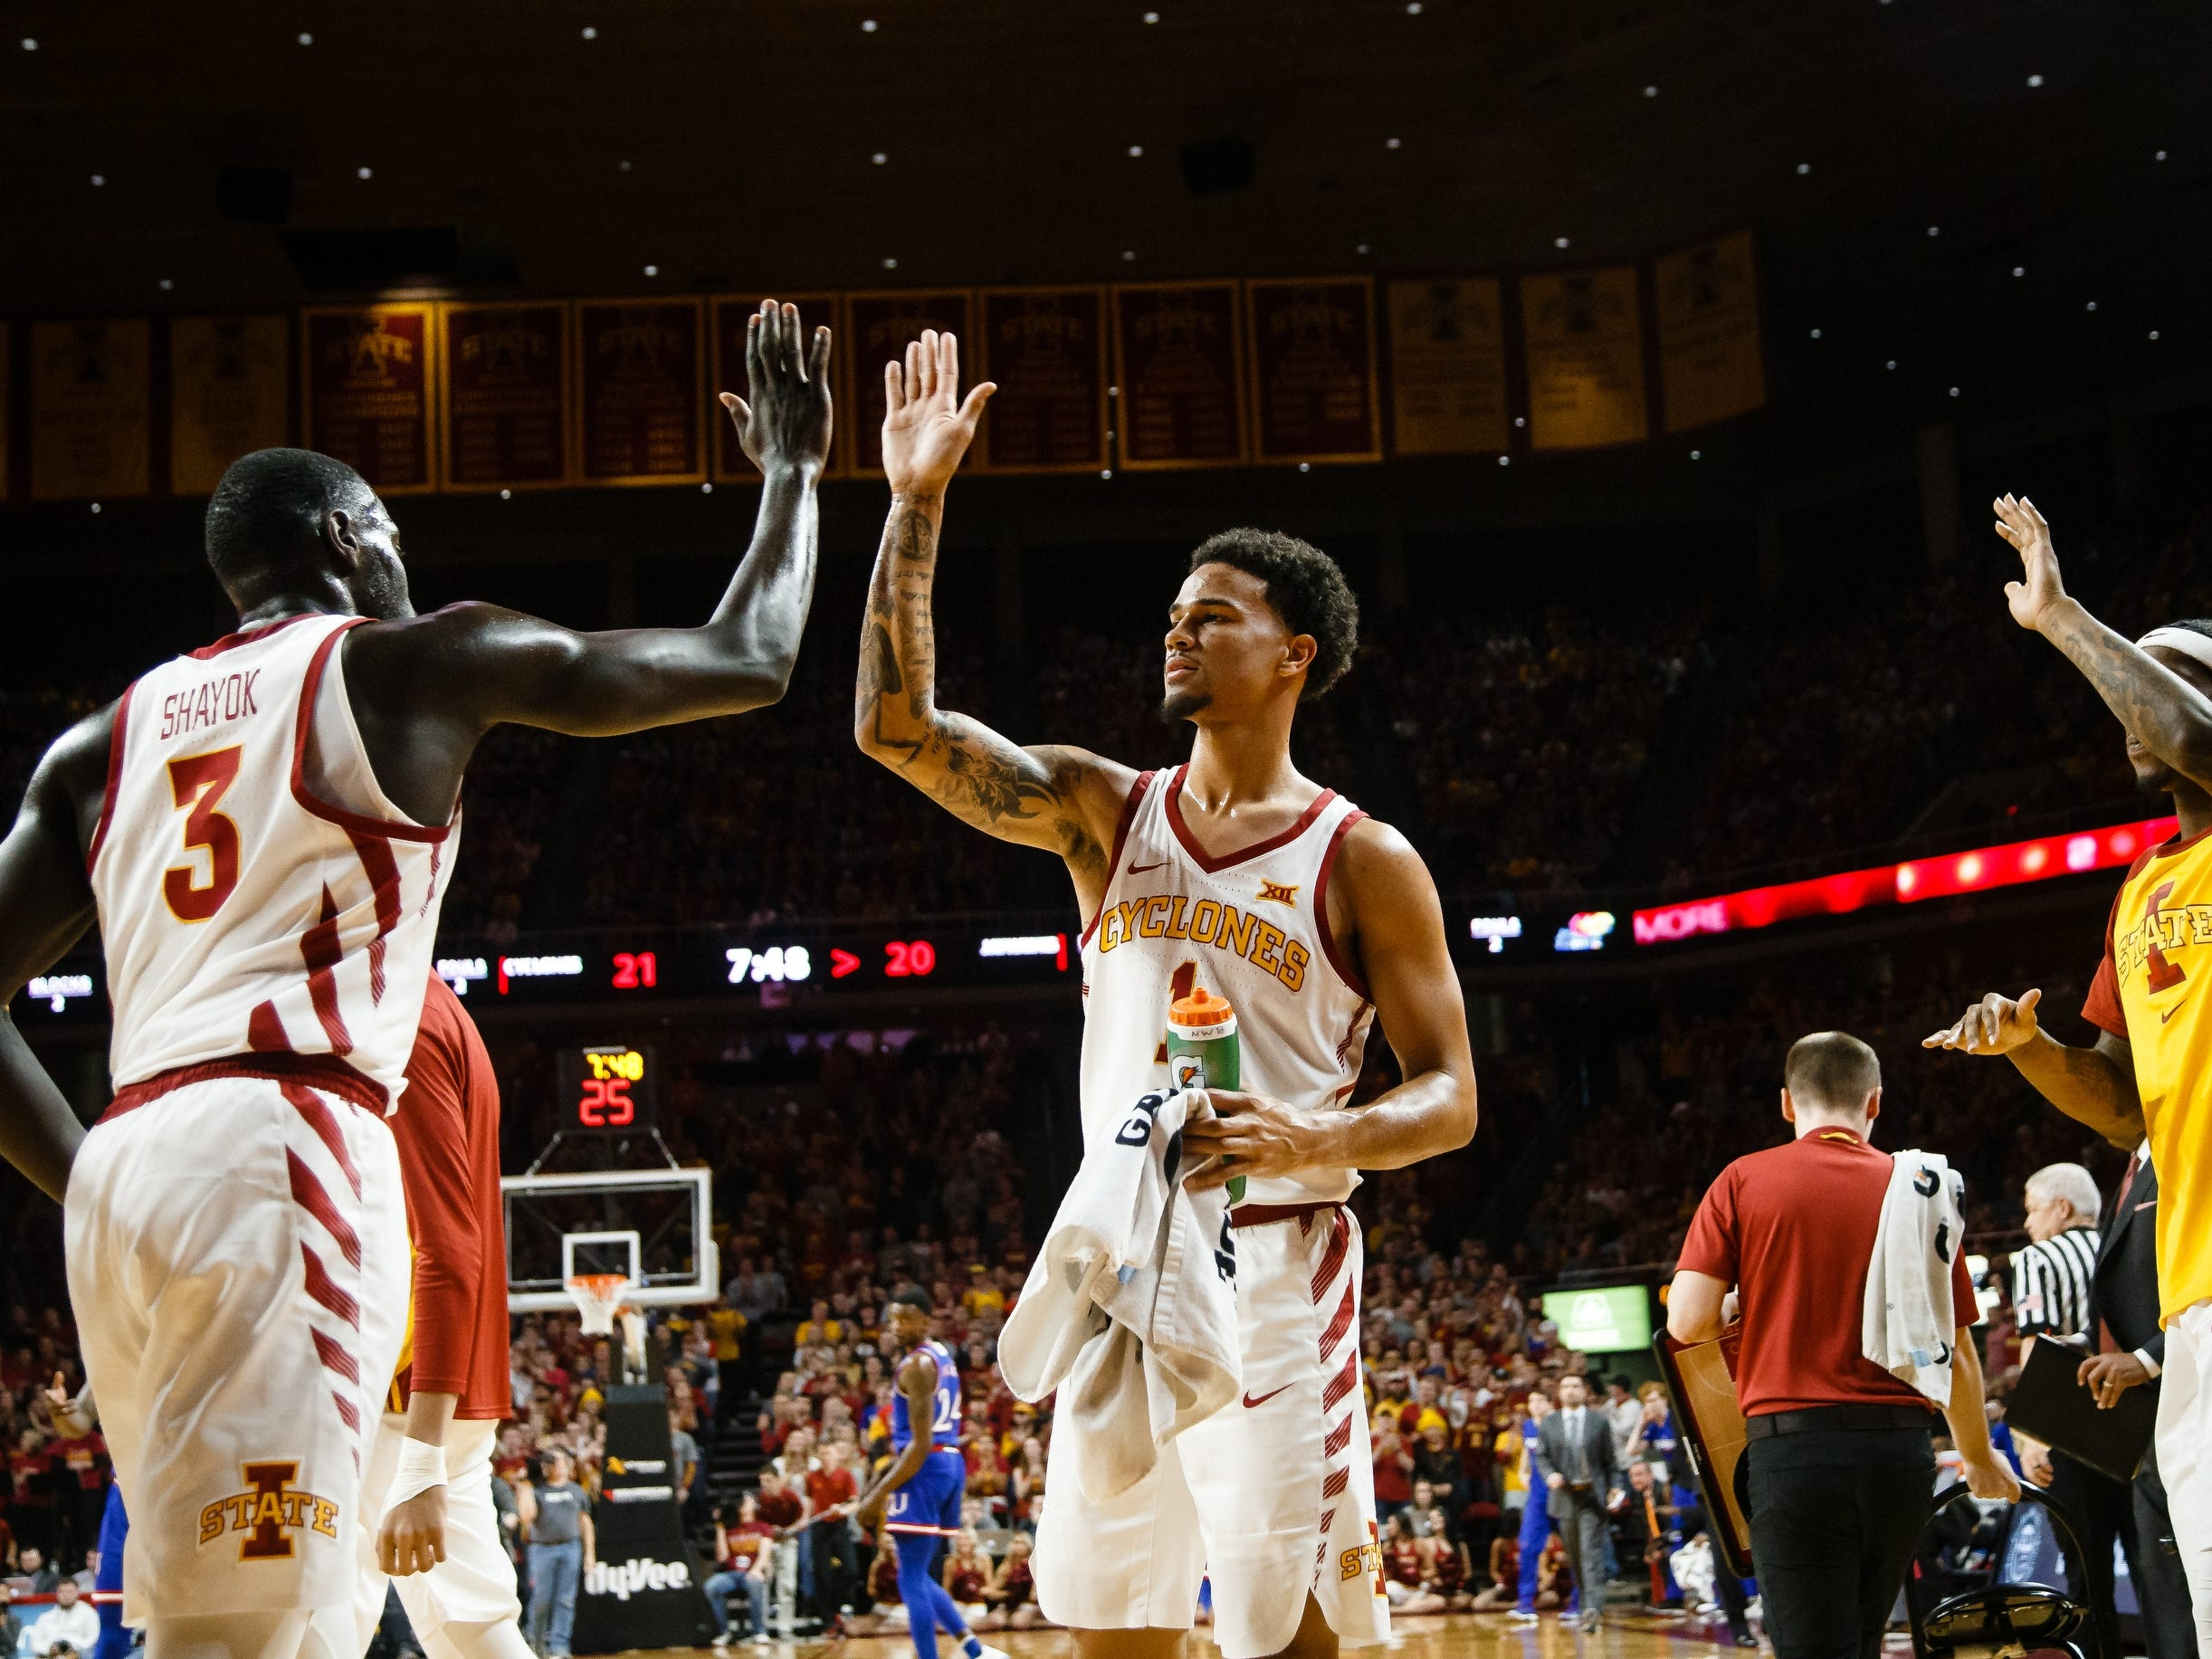 Iowa State's Marial Shayok (3) and Iowa State's Nick Weiler-Babb (1) high five during the first half of their basketball game on Saturday, Jan. 5, 2019, in Ames. Iowa State would go on to win 77-60.